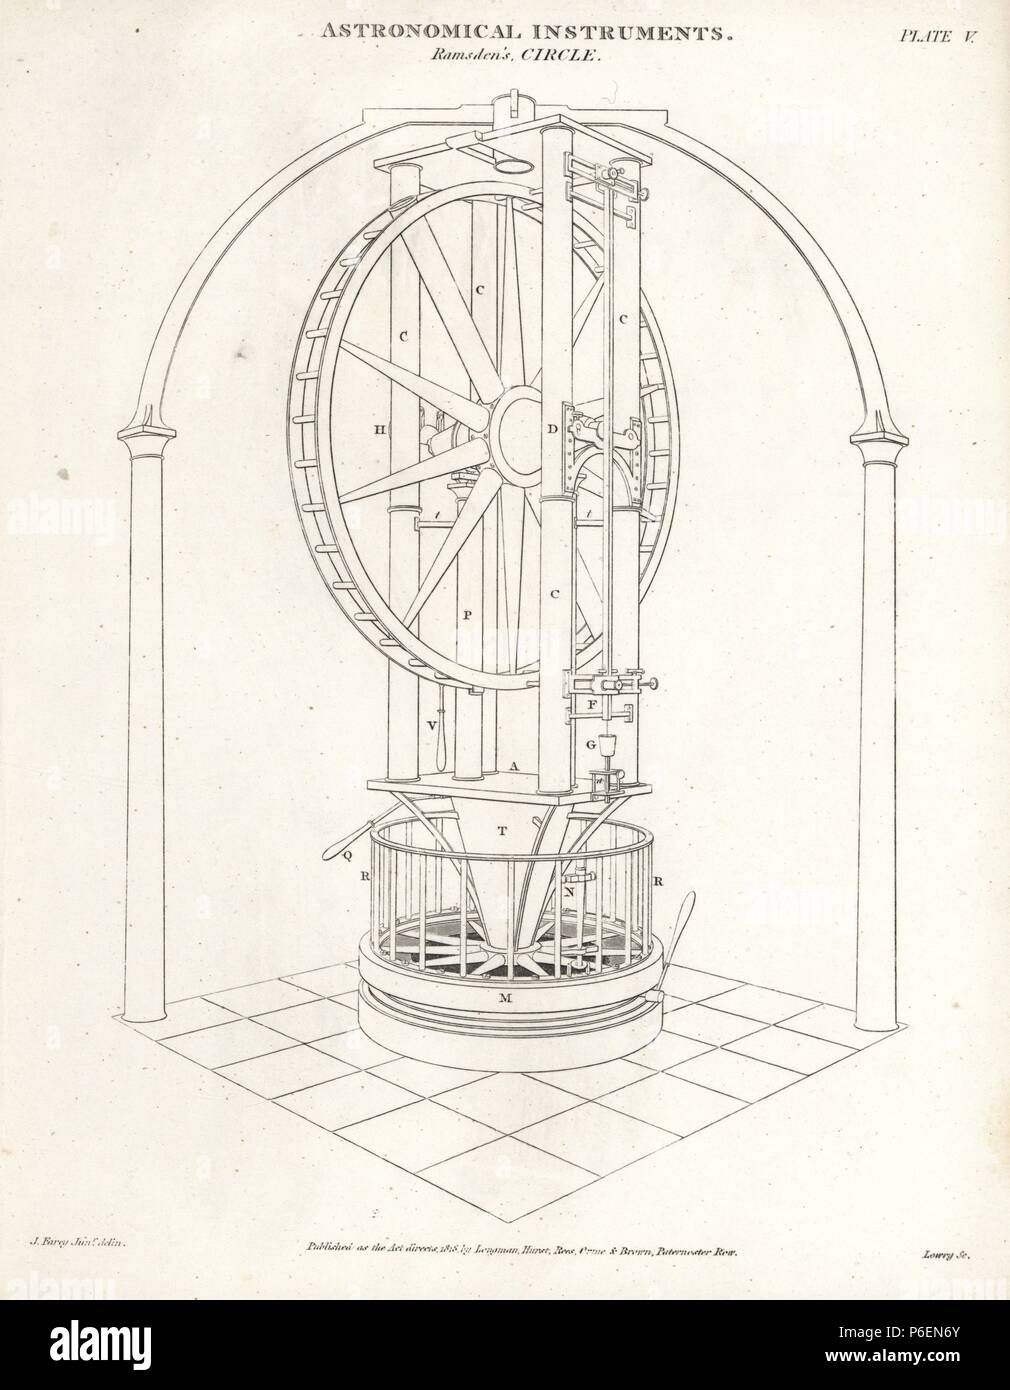 Ramsden's circle, a five-foot high vertical circle finished in 1789 by the English scientific instrument maker Jesse Ramsden. Copperplate engraving by Wilson Lowry after a drawing by J. Farey from Abraham Rees' Cyclopedia or Universal Dictionary of Arts, Sciences and Literature, Longman, Hurst, Rees, Orme and Brown, London, 1820. Stock Photo